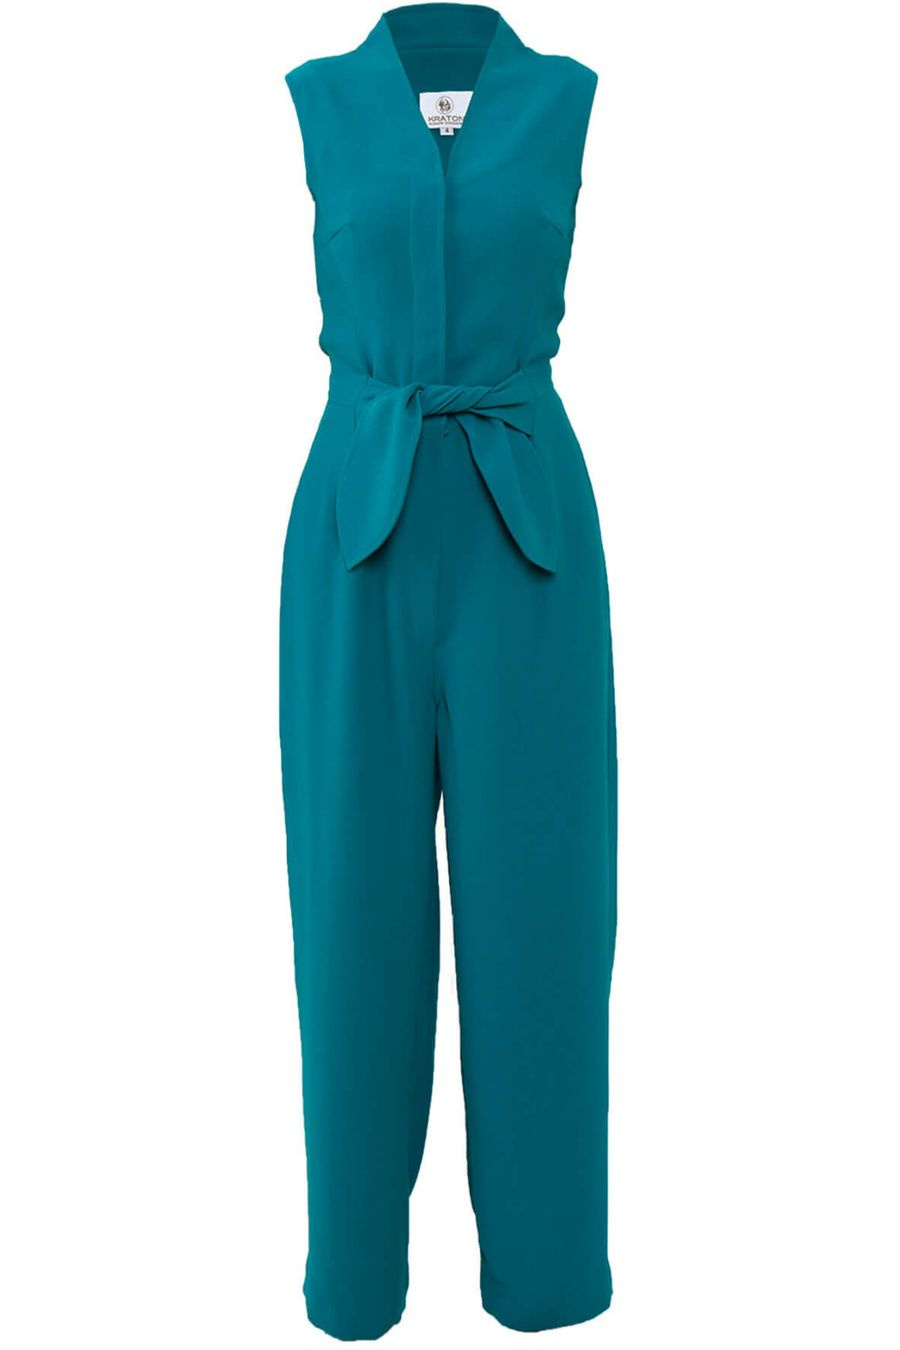 kraton-teal-jumpsuit-with-bow-belt-1